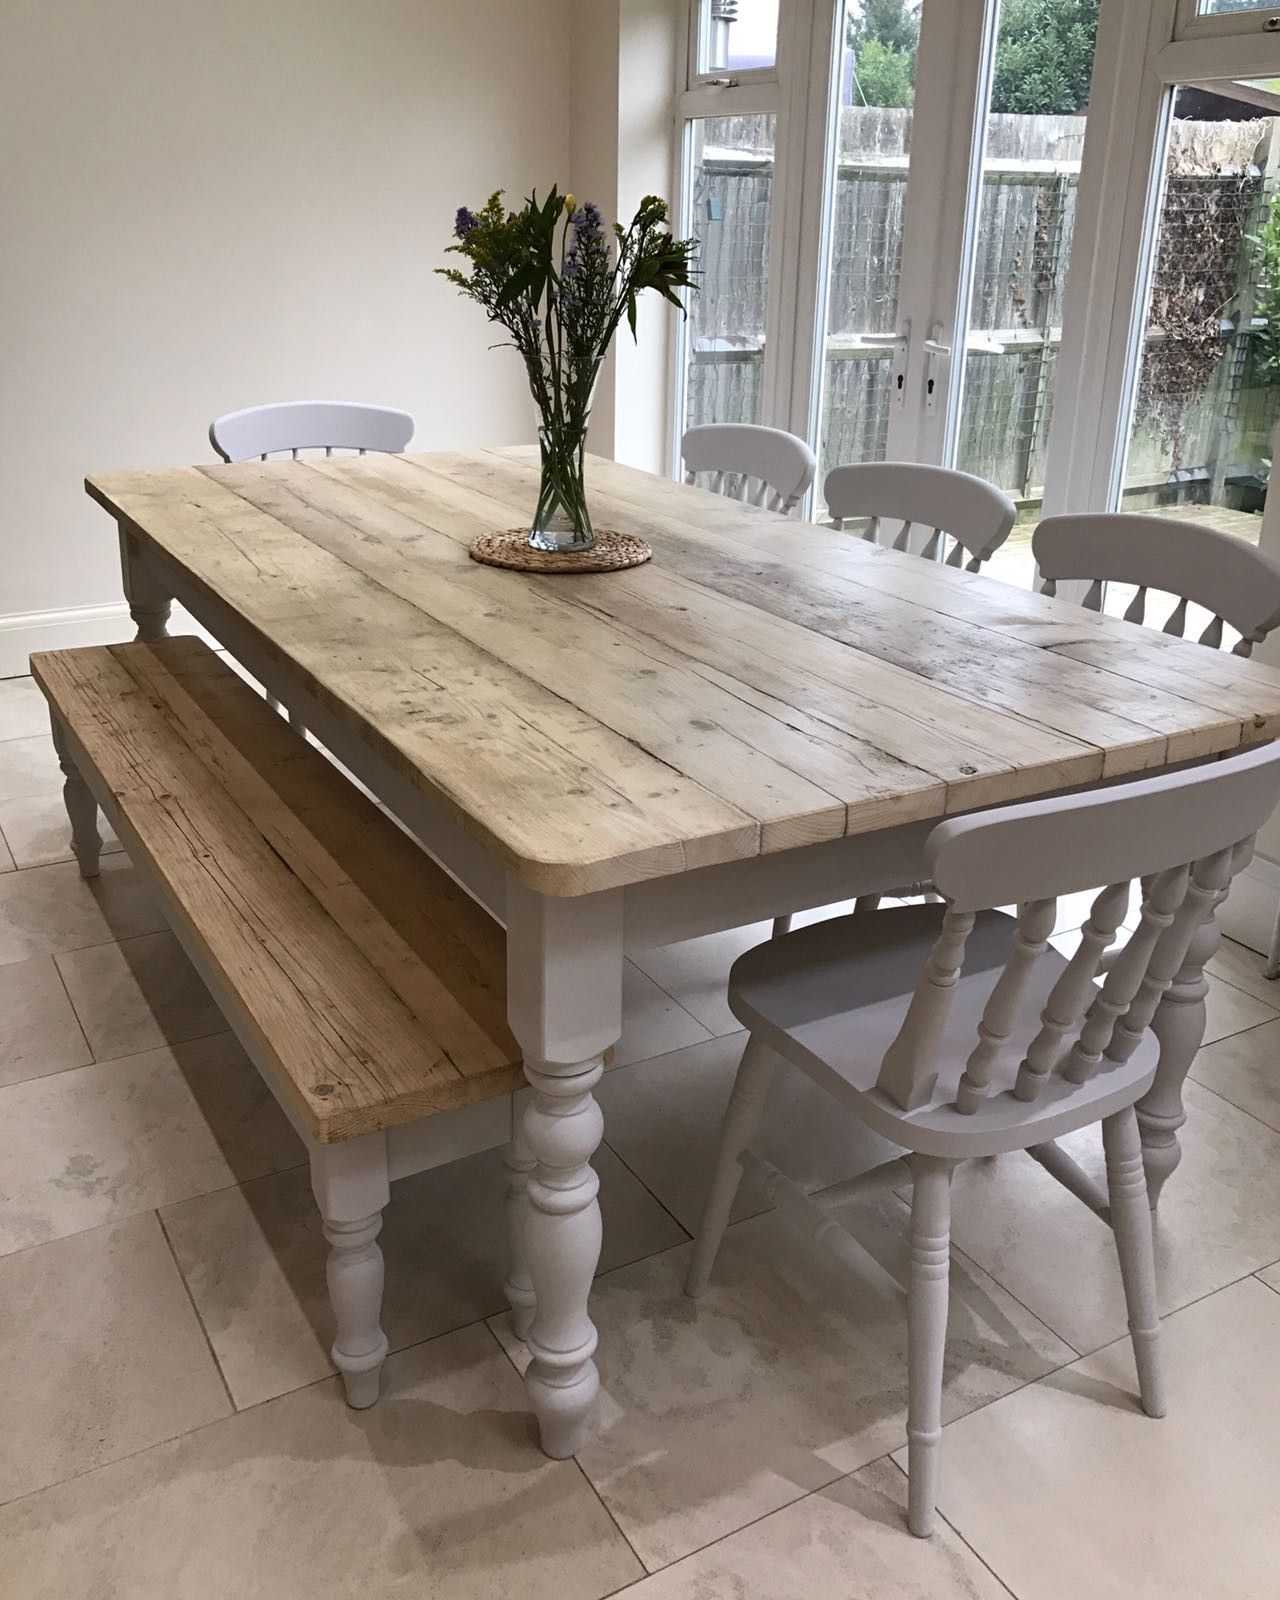 Lime Washed Farmhouse Tables And Benches Bespoke Sizes Country Life Furniture Farmhouse Dining Rooms Decor Farmhouse Dining Table Farmhouse Kitchen Tables